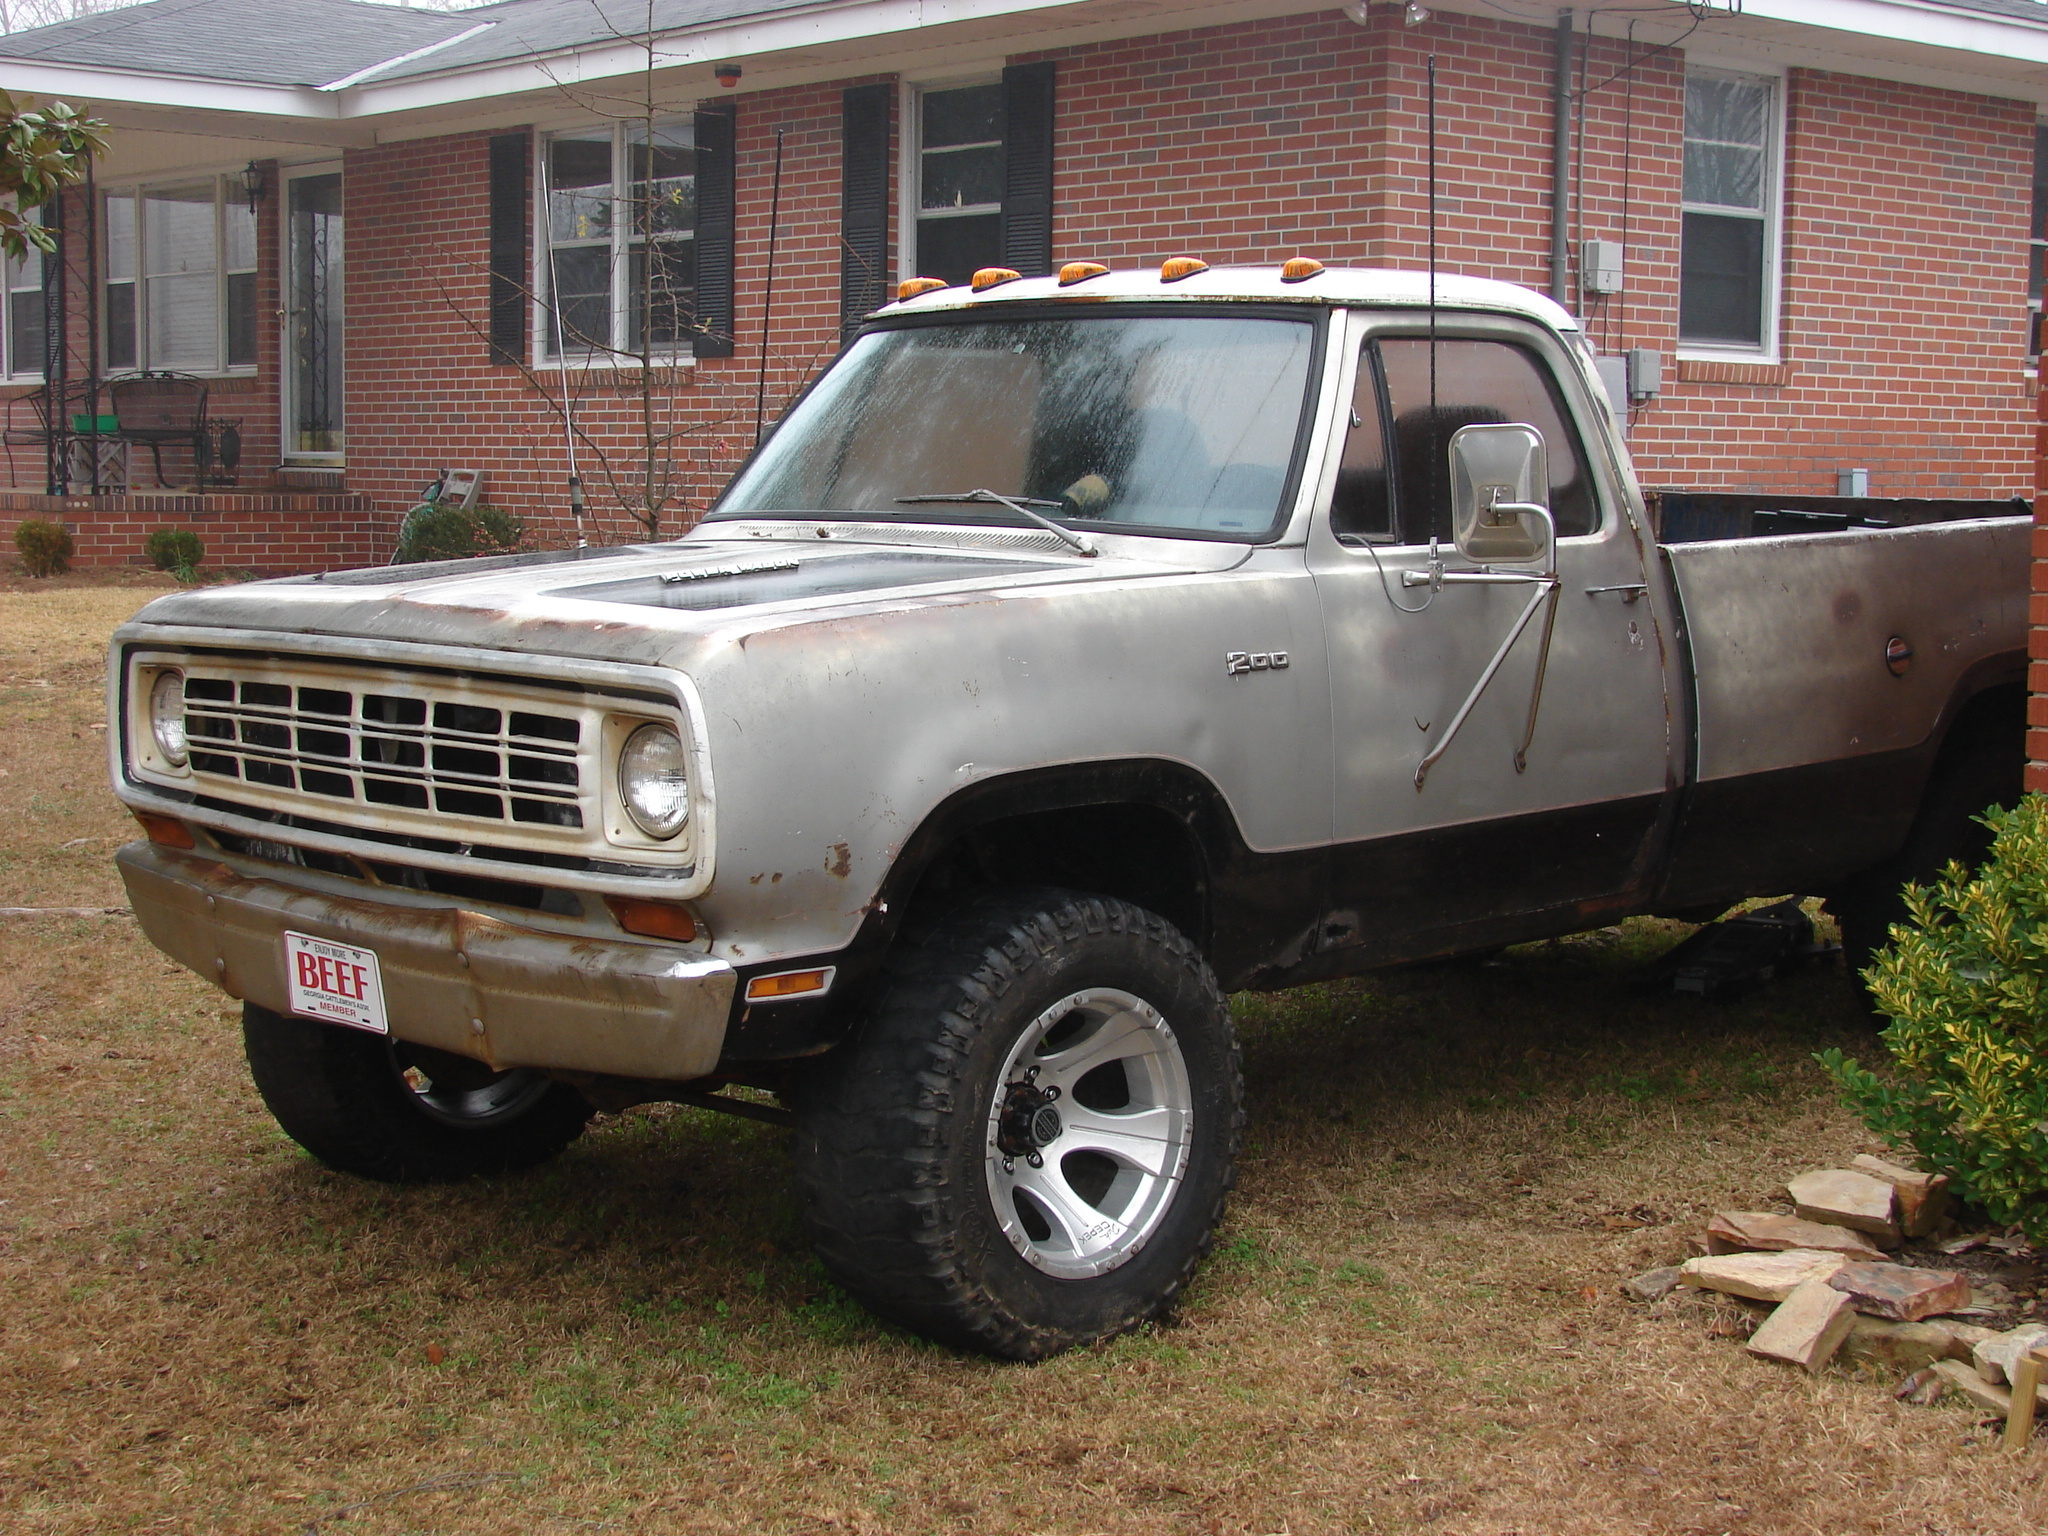 Demon_Offroad 1974 Dodge Power Wagon 12551171